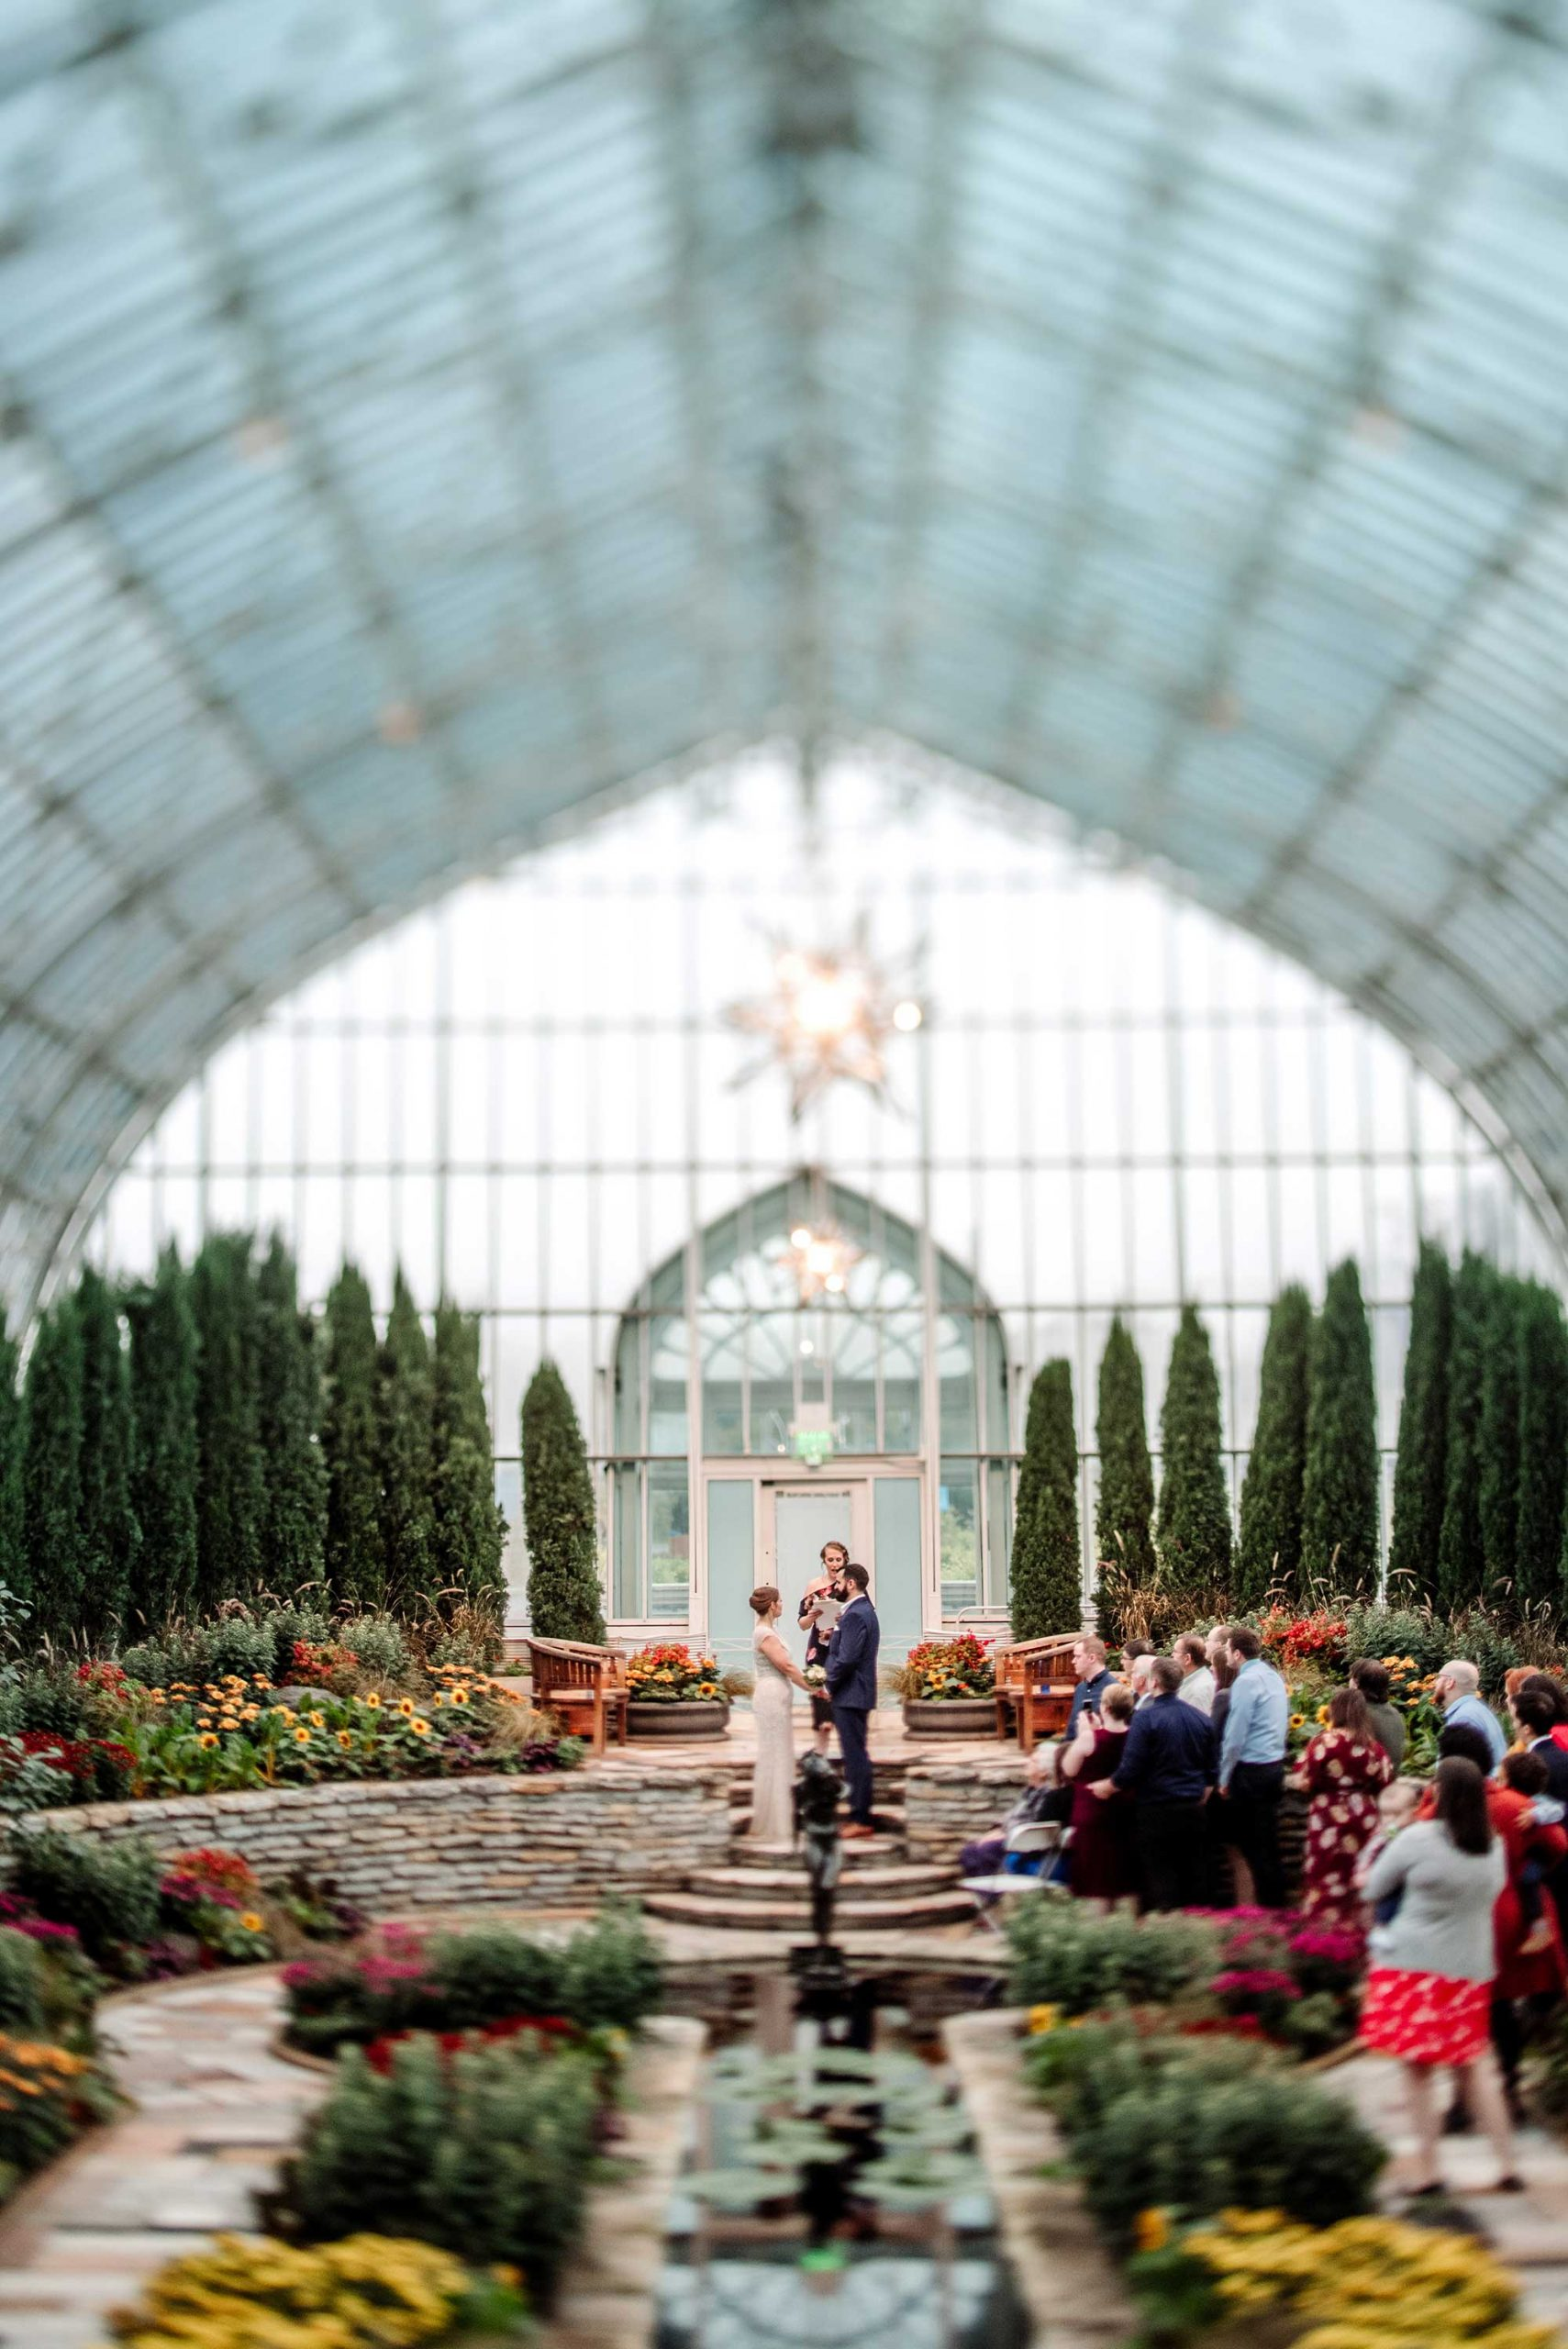 tilt shift lens photo of Como Conservatory wedding ceremony in sunken garden